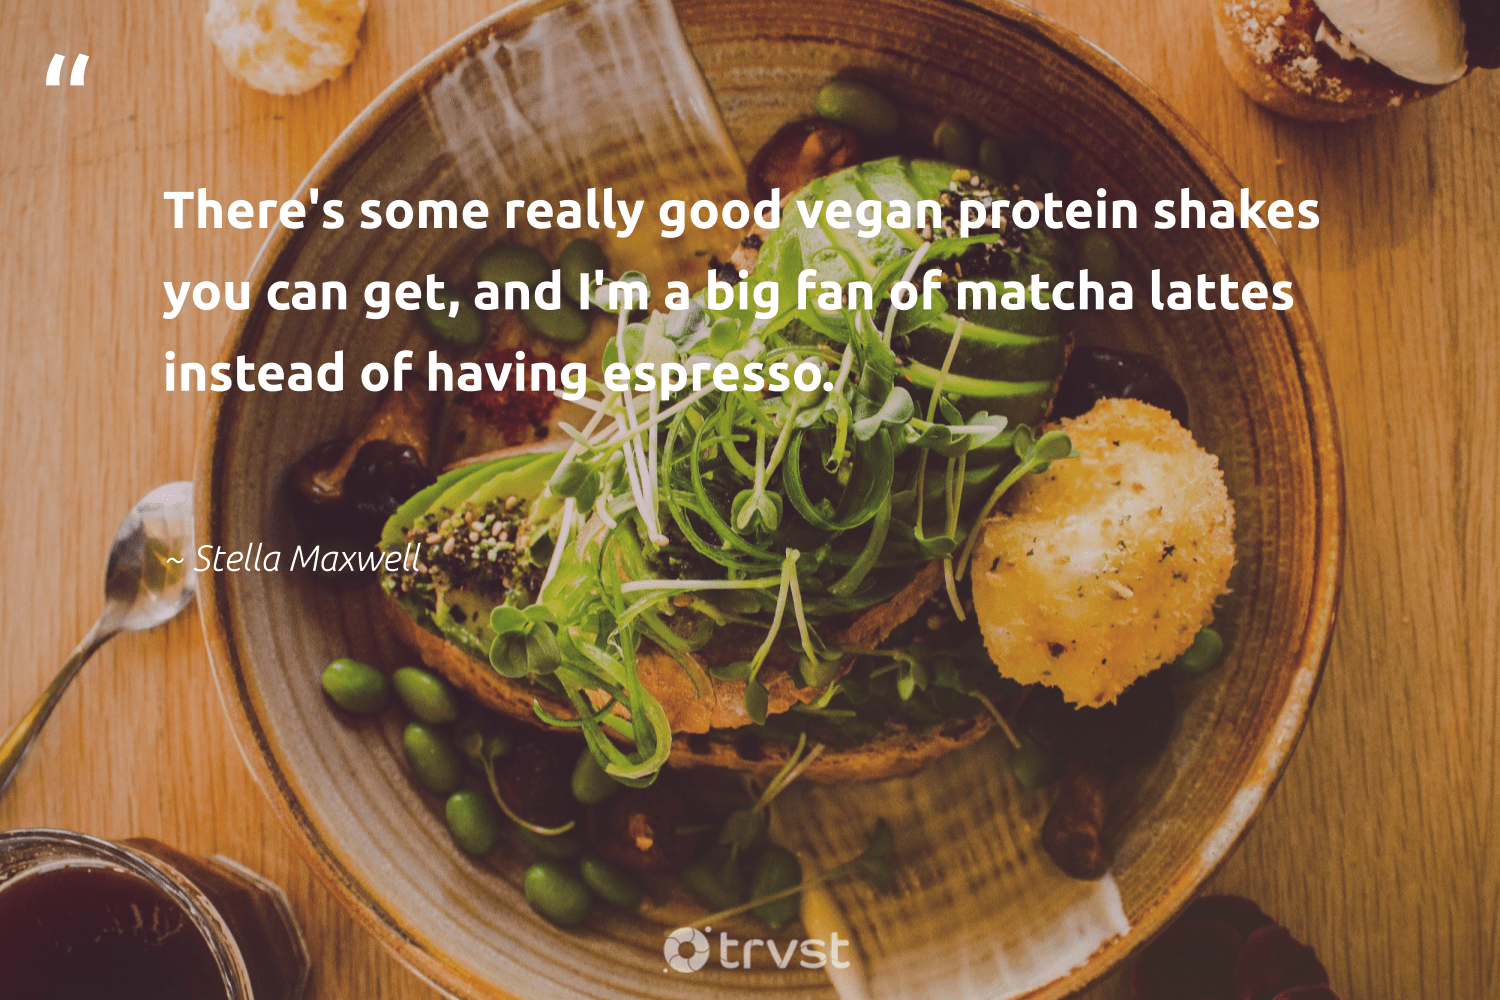 """There's some really good vegan protein shakes you can get, and I'm a big fan of matcha lattes instead of having espresso.""  - Stella Maxwell #trvst #quotes #vegan #plantbased #gogreen #greenliving #dotherightthing #vegetarian #fashion #green #bethechange #veganlife"